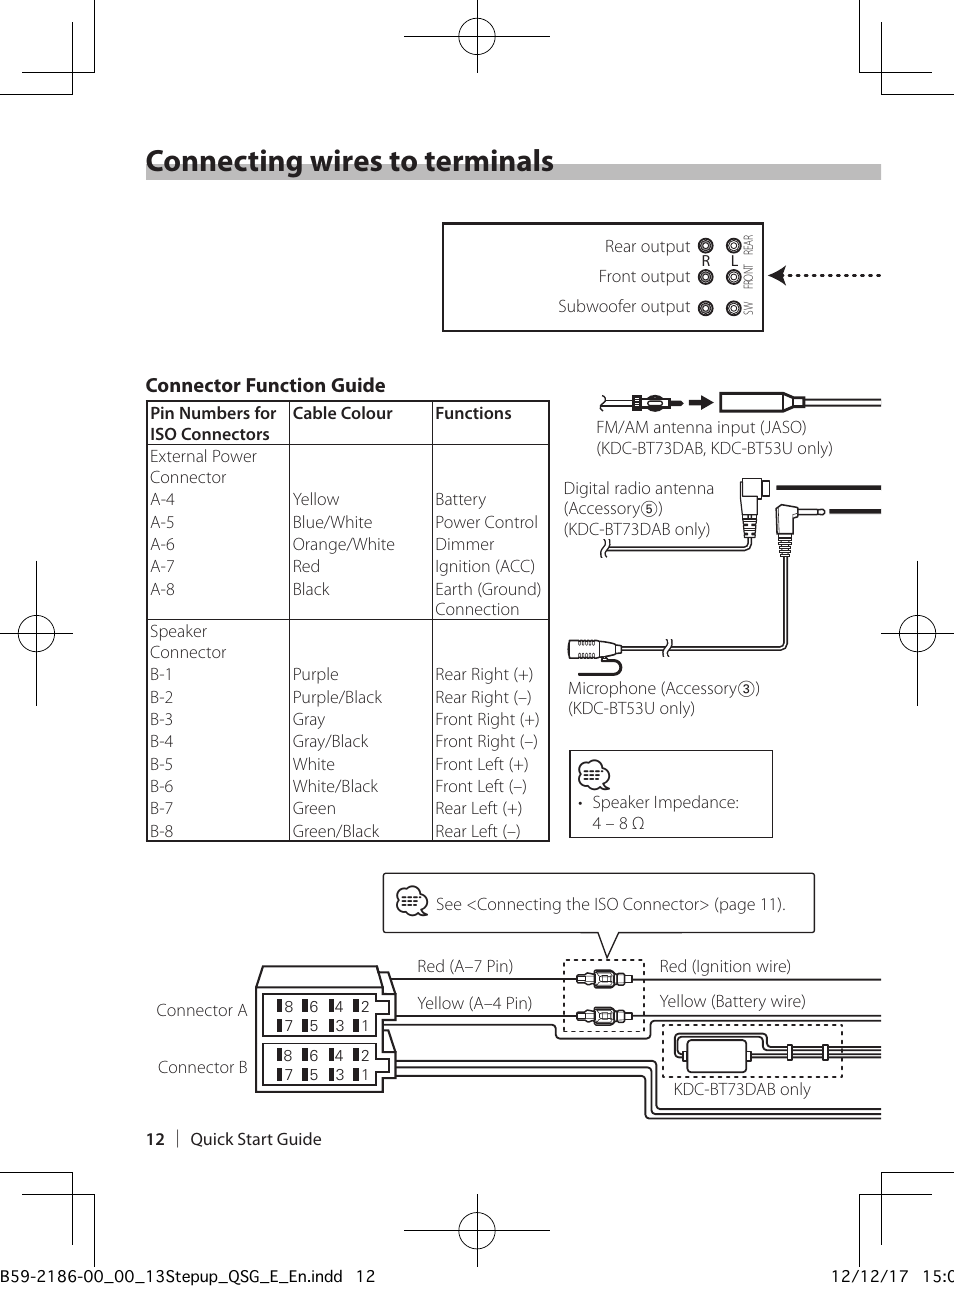 car stereo wiring diagram kenwood kdc 6011 connecting wires to terminals | kenwood kdc-bt53u user ...